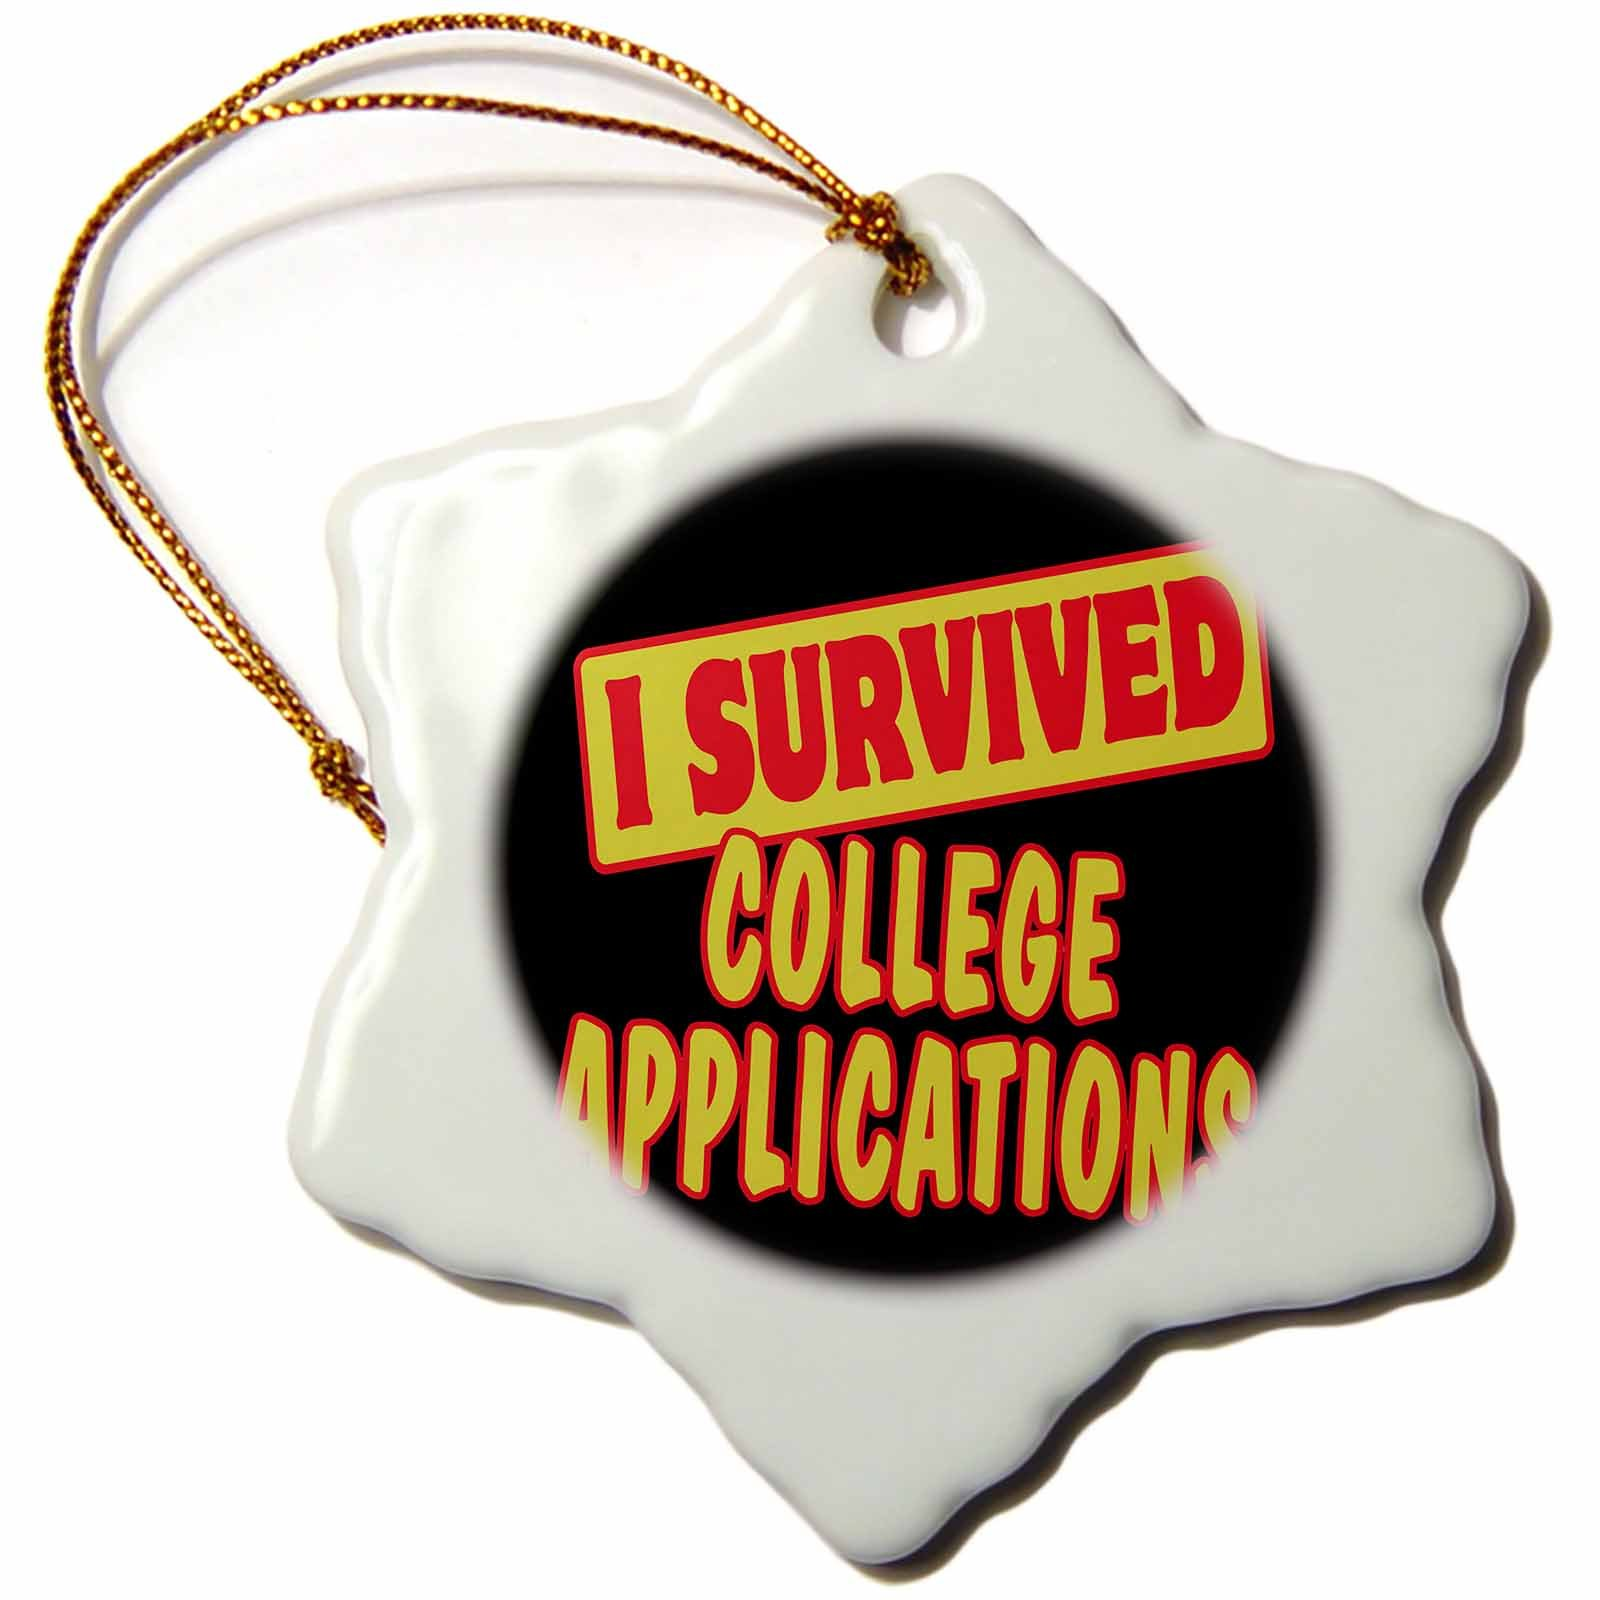 3dRose orn_117845_1 I Survived College Applications Survial Pride and Humor Design Snowflake Ornament, Porcelain, 3-Inch